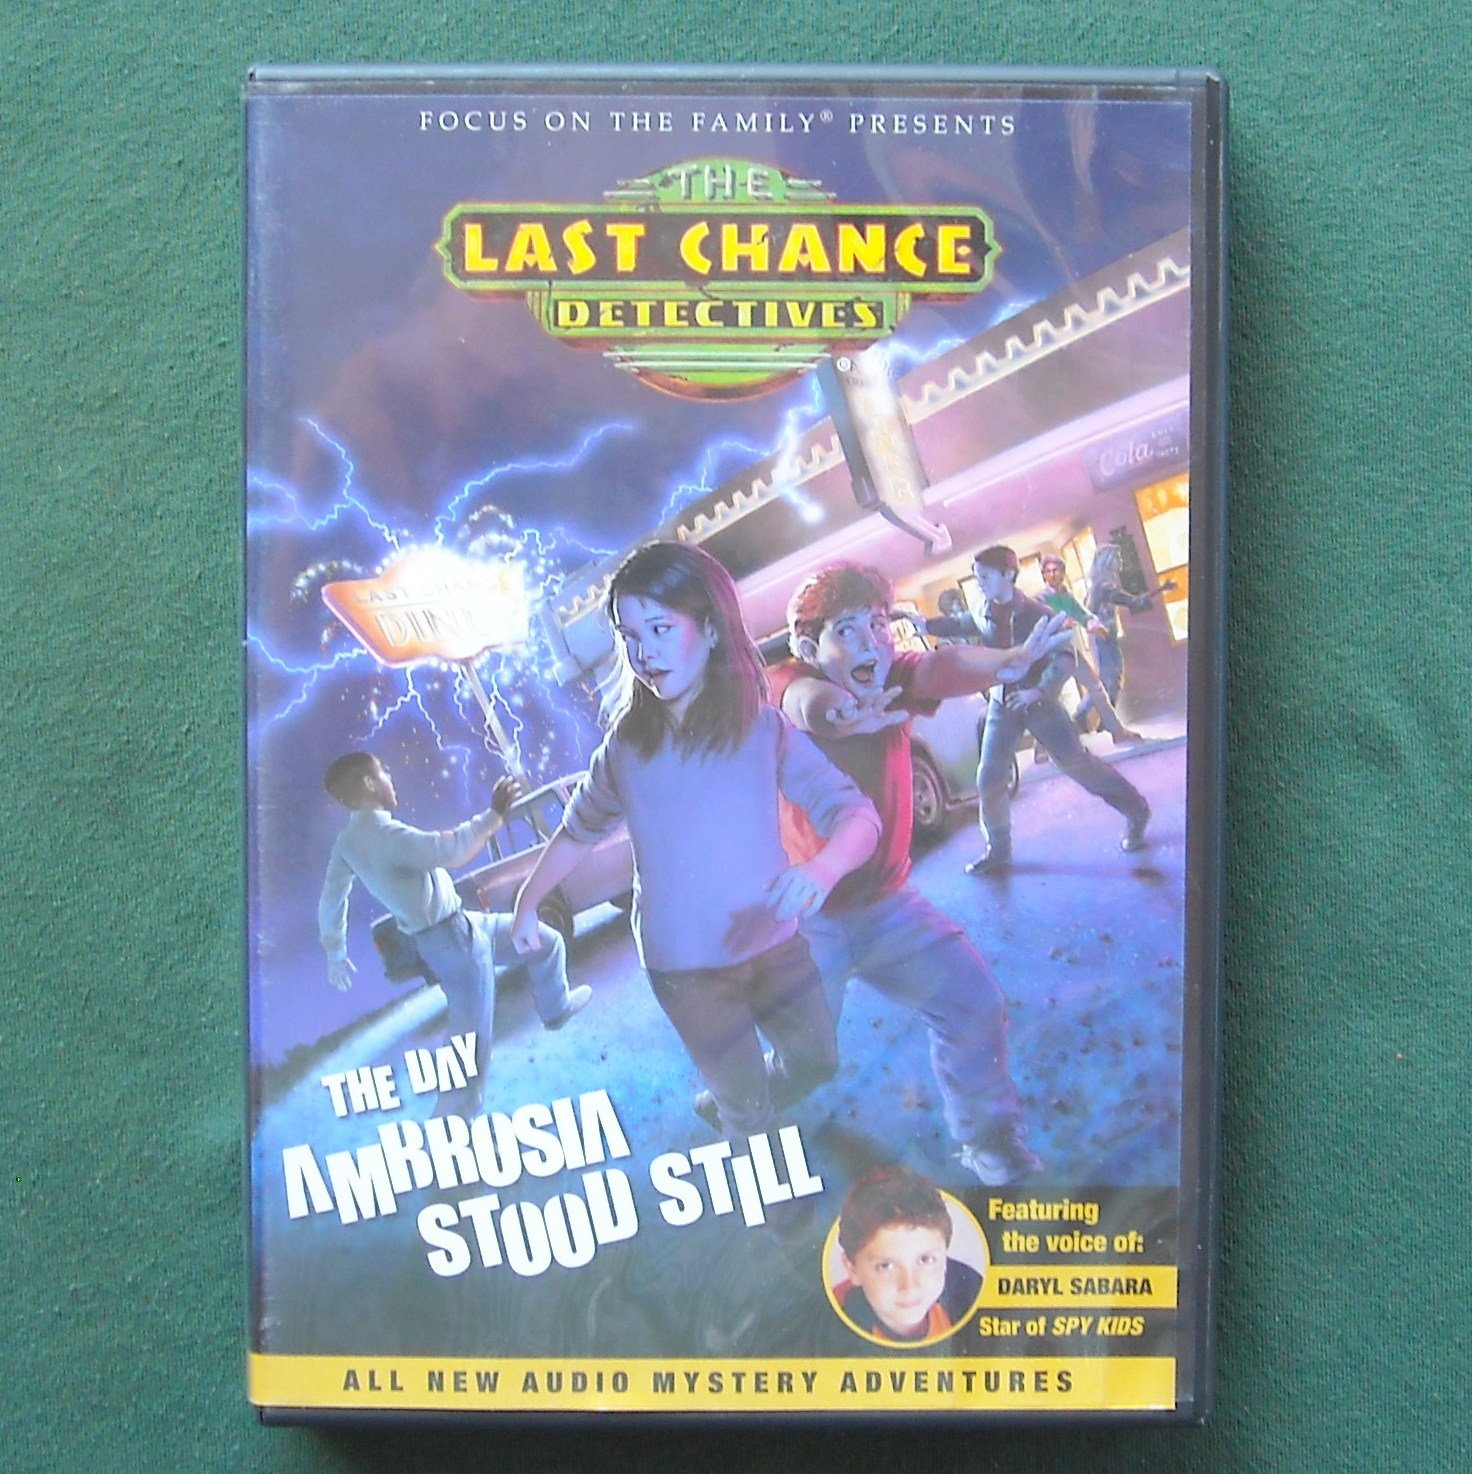 Last Chance Detectives The Day Ambrosia Stood Still Audiobook CD